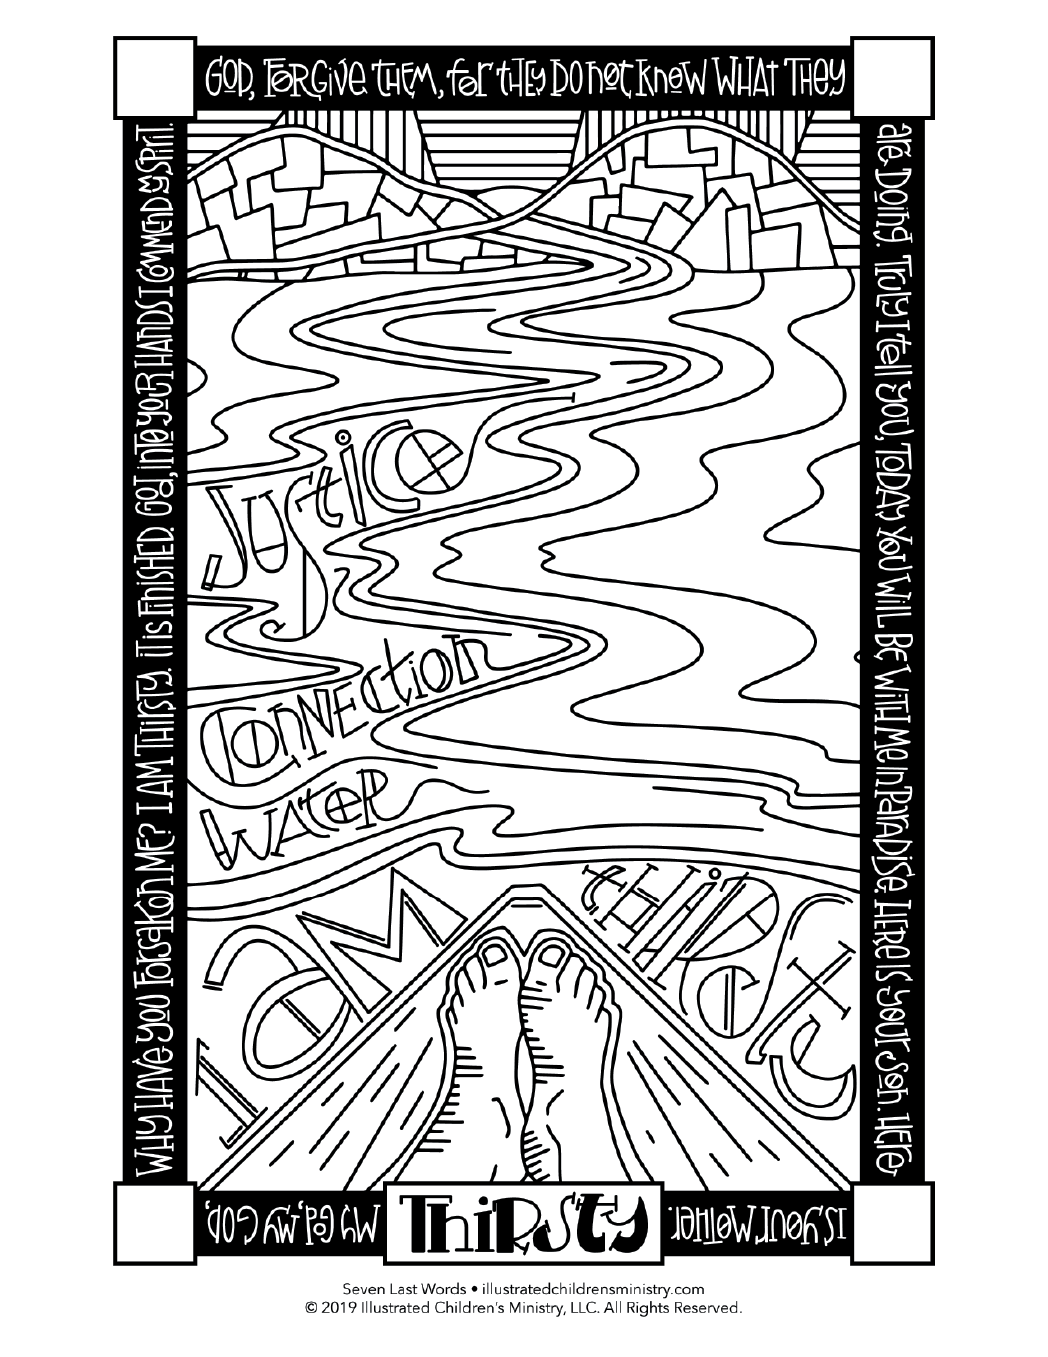 Seven Last Words coloring page - Thirsty